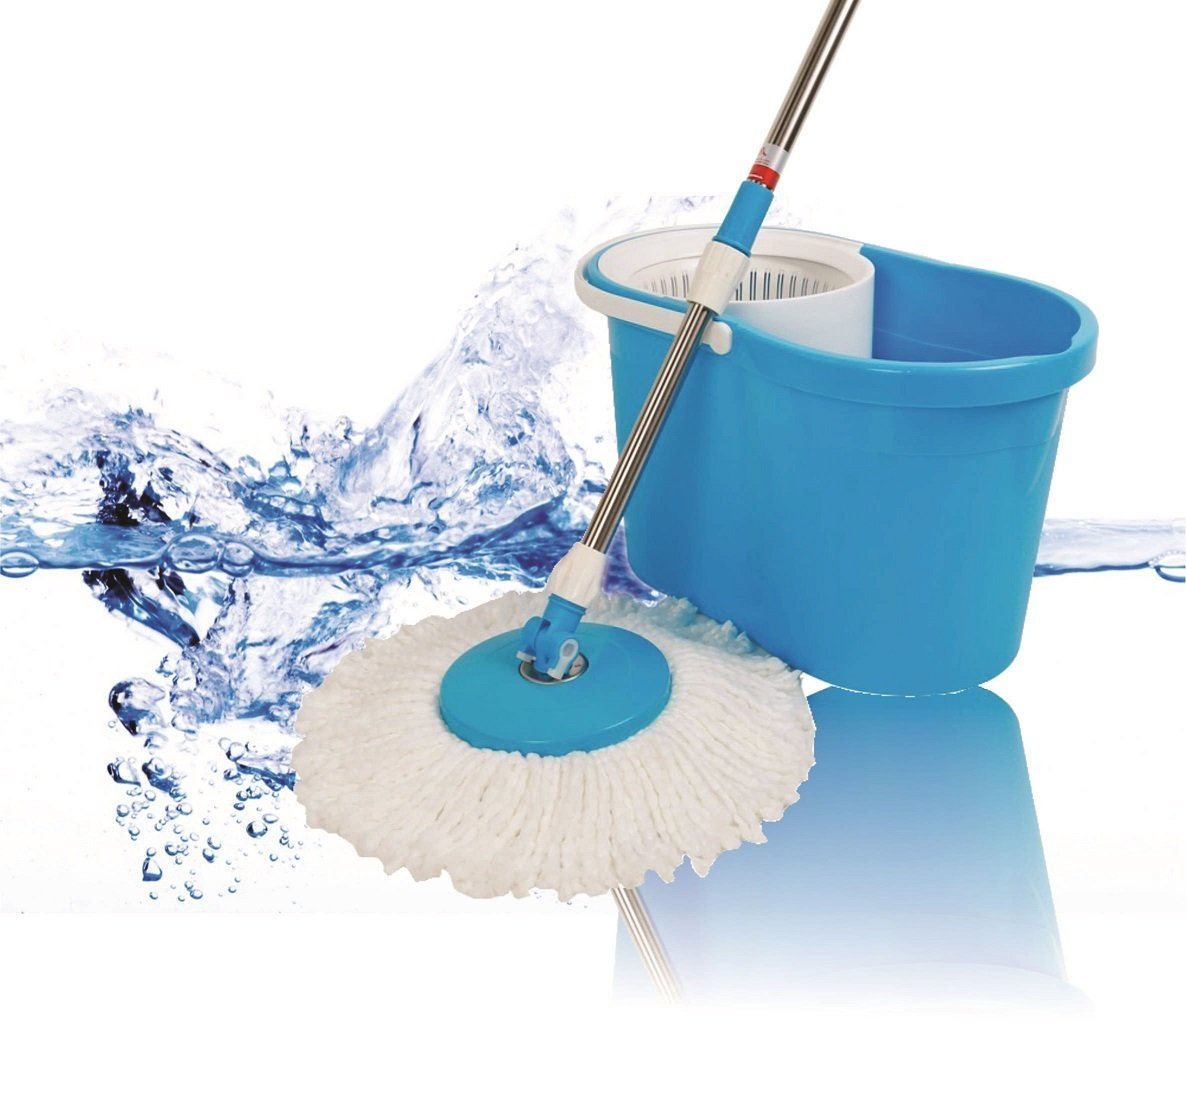 of new bucket vileda perfect on floors a spin system thorough for put the cleaner any pin flooring type with mopping easywring mop floor cleaning